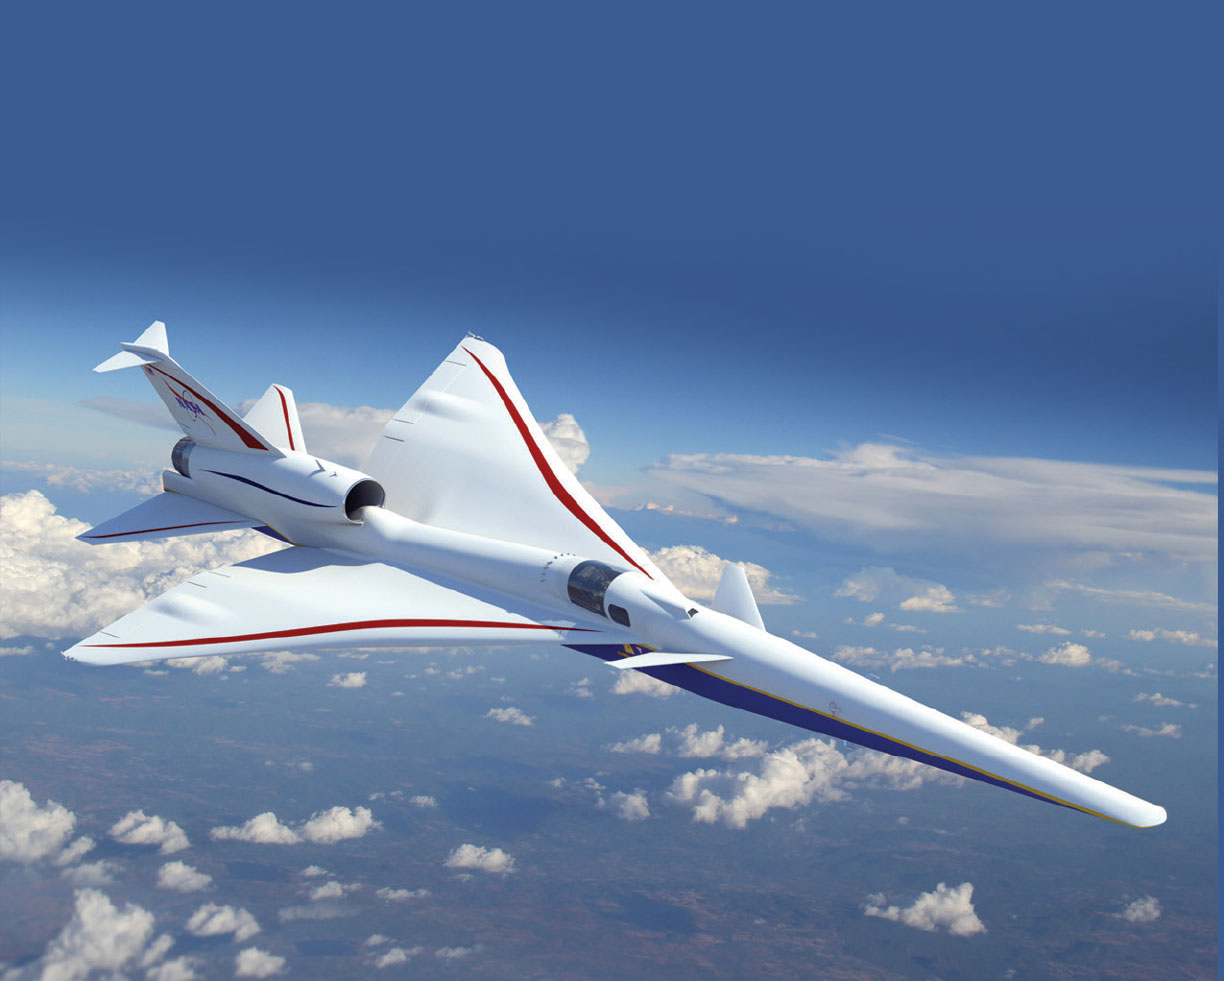 NASA Selects Lockheed Martin Skunk Works to Build X-Plane